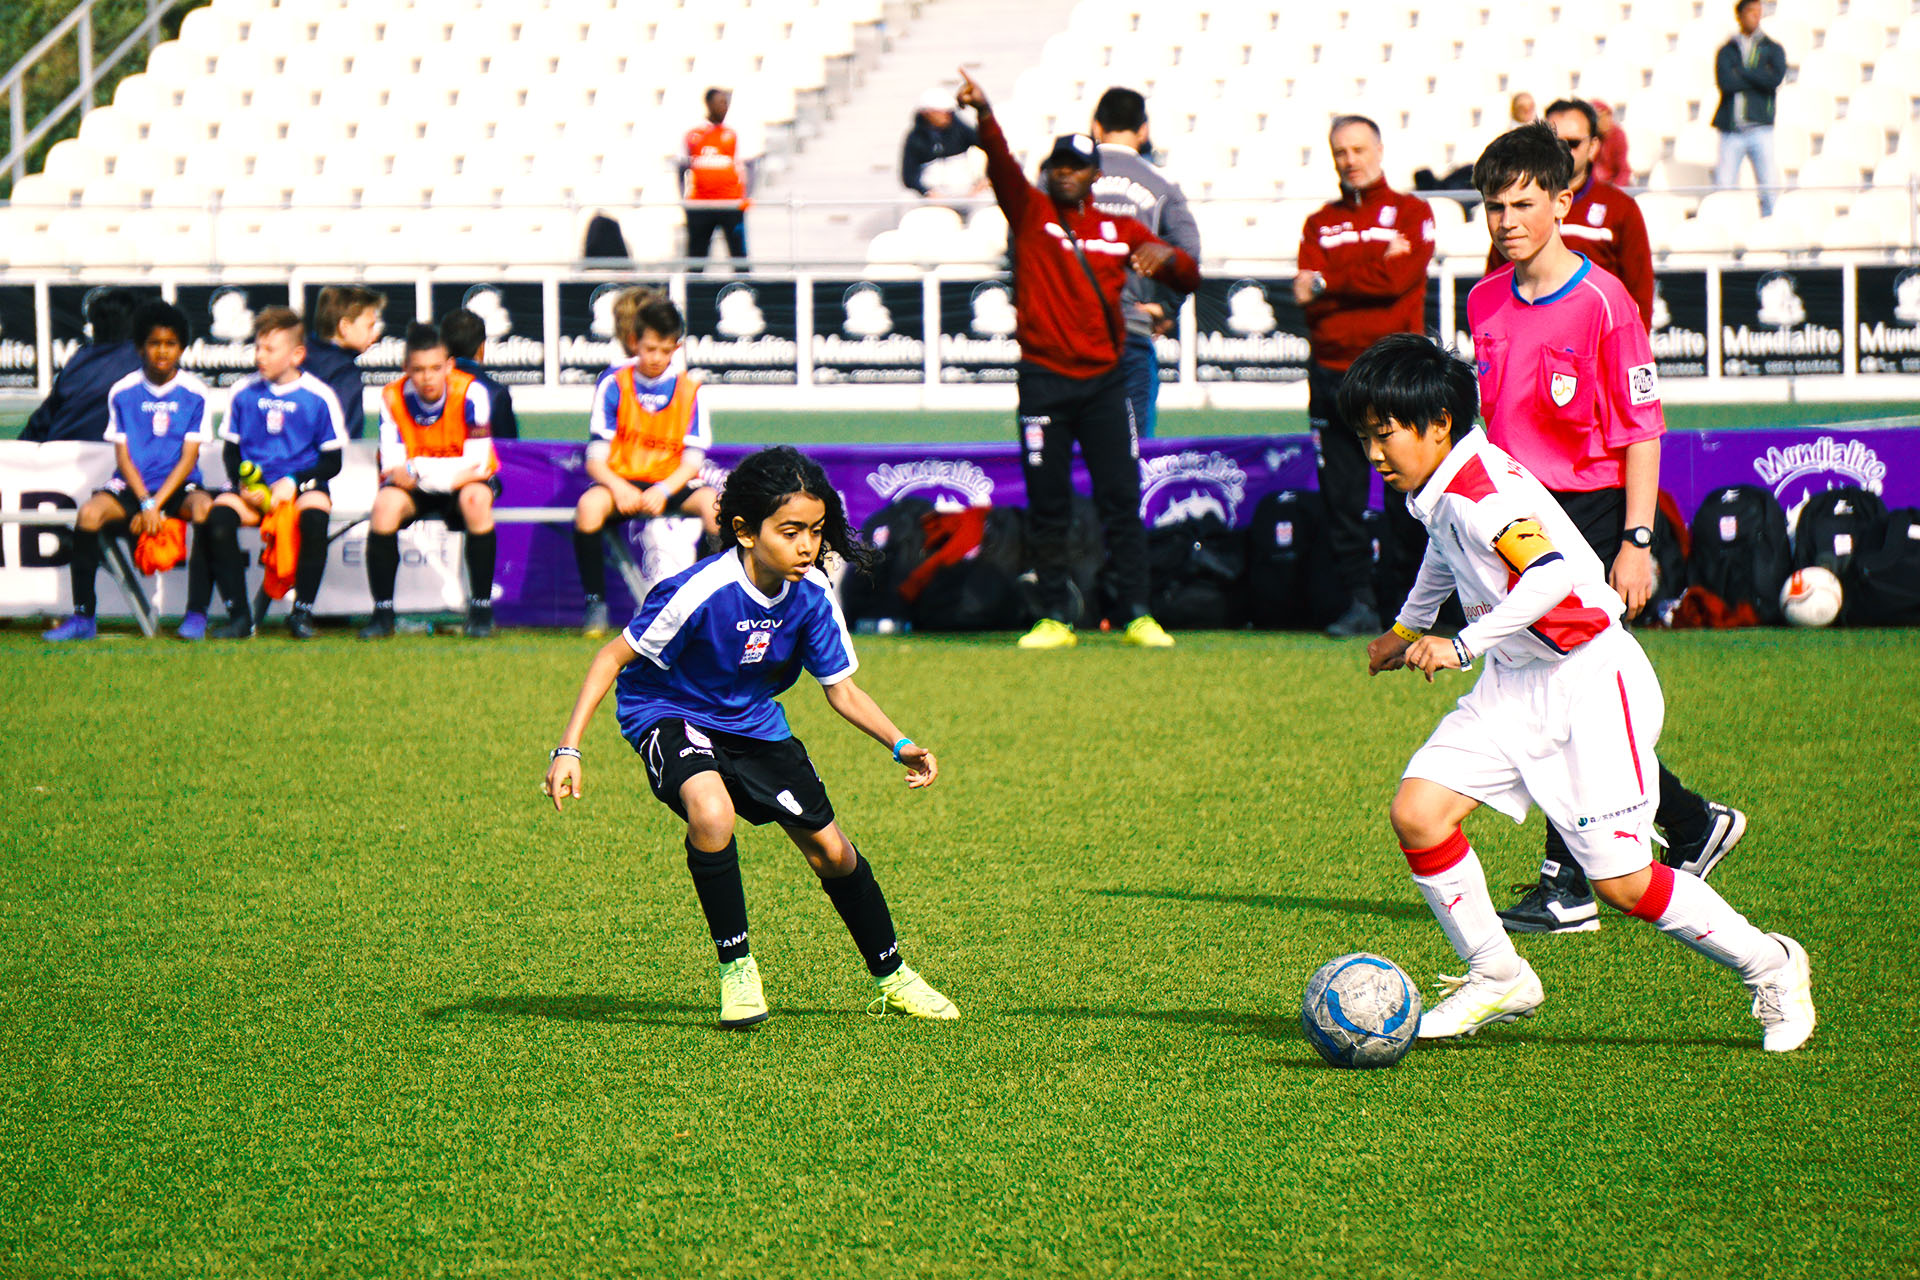 Kid from team Cerezo Osaka faces an opponent during a match in Mundialito 2019 in Catalyuna, Spain